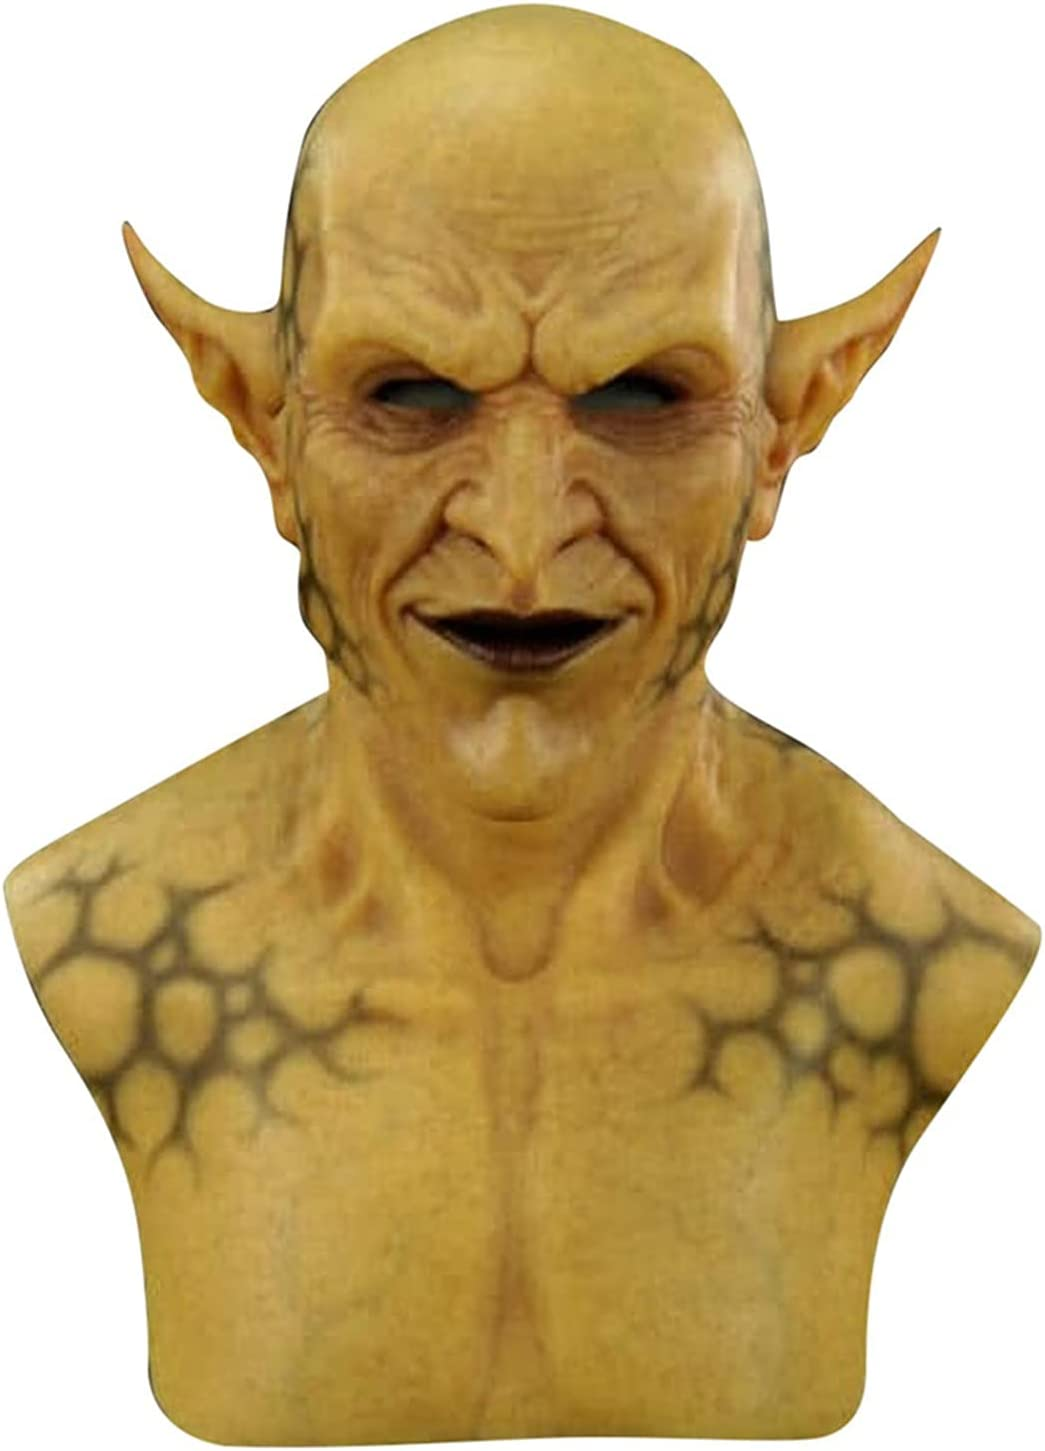 Devil Skull Max 77% OFF Mask Horror Halloween Comfortable Beauty products Adult Grimace